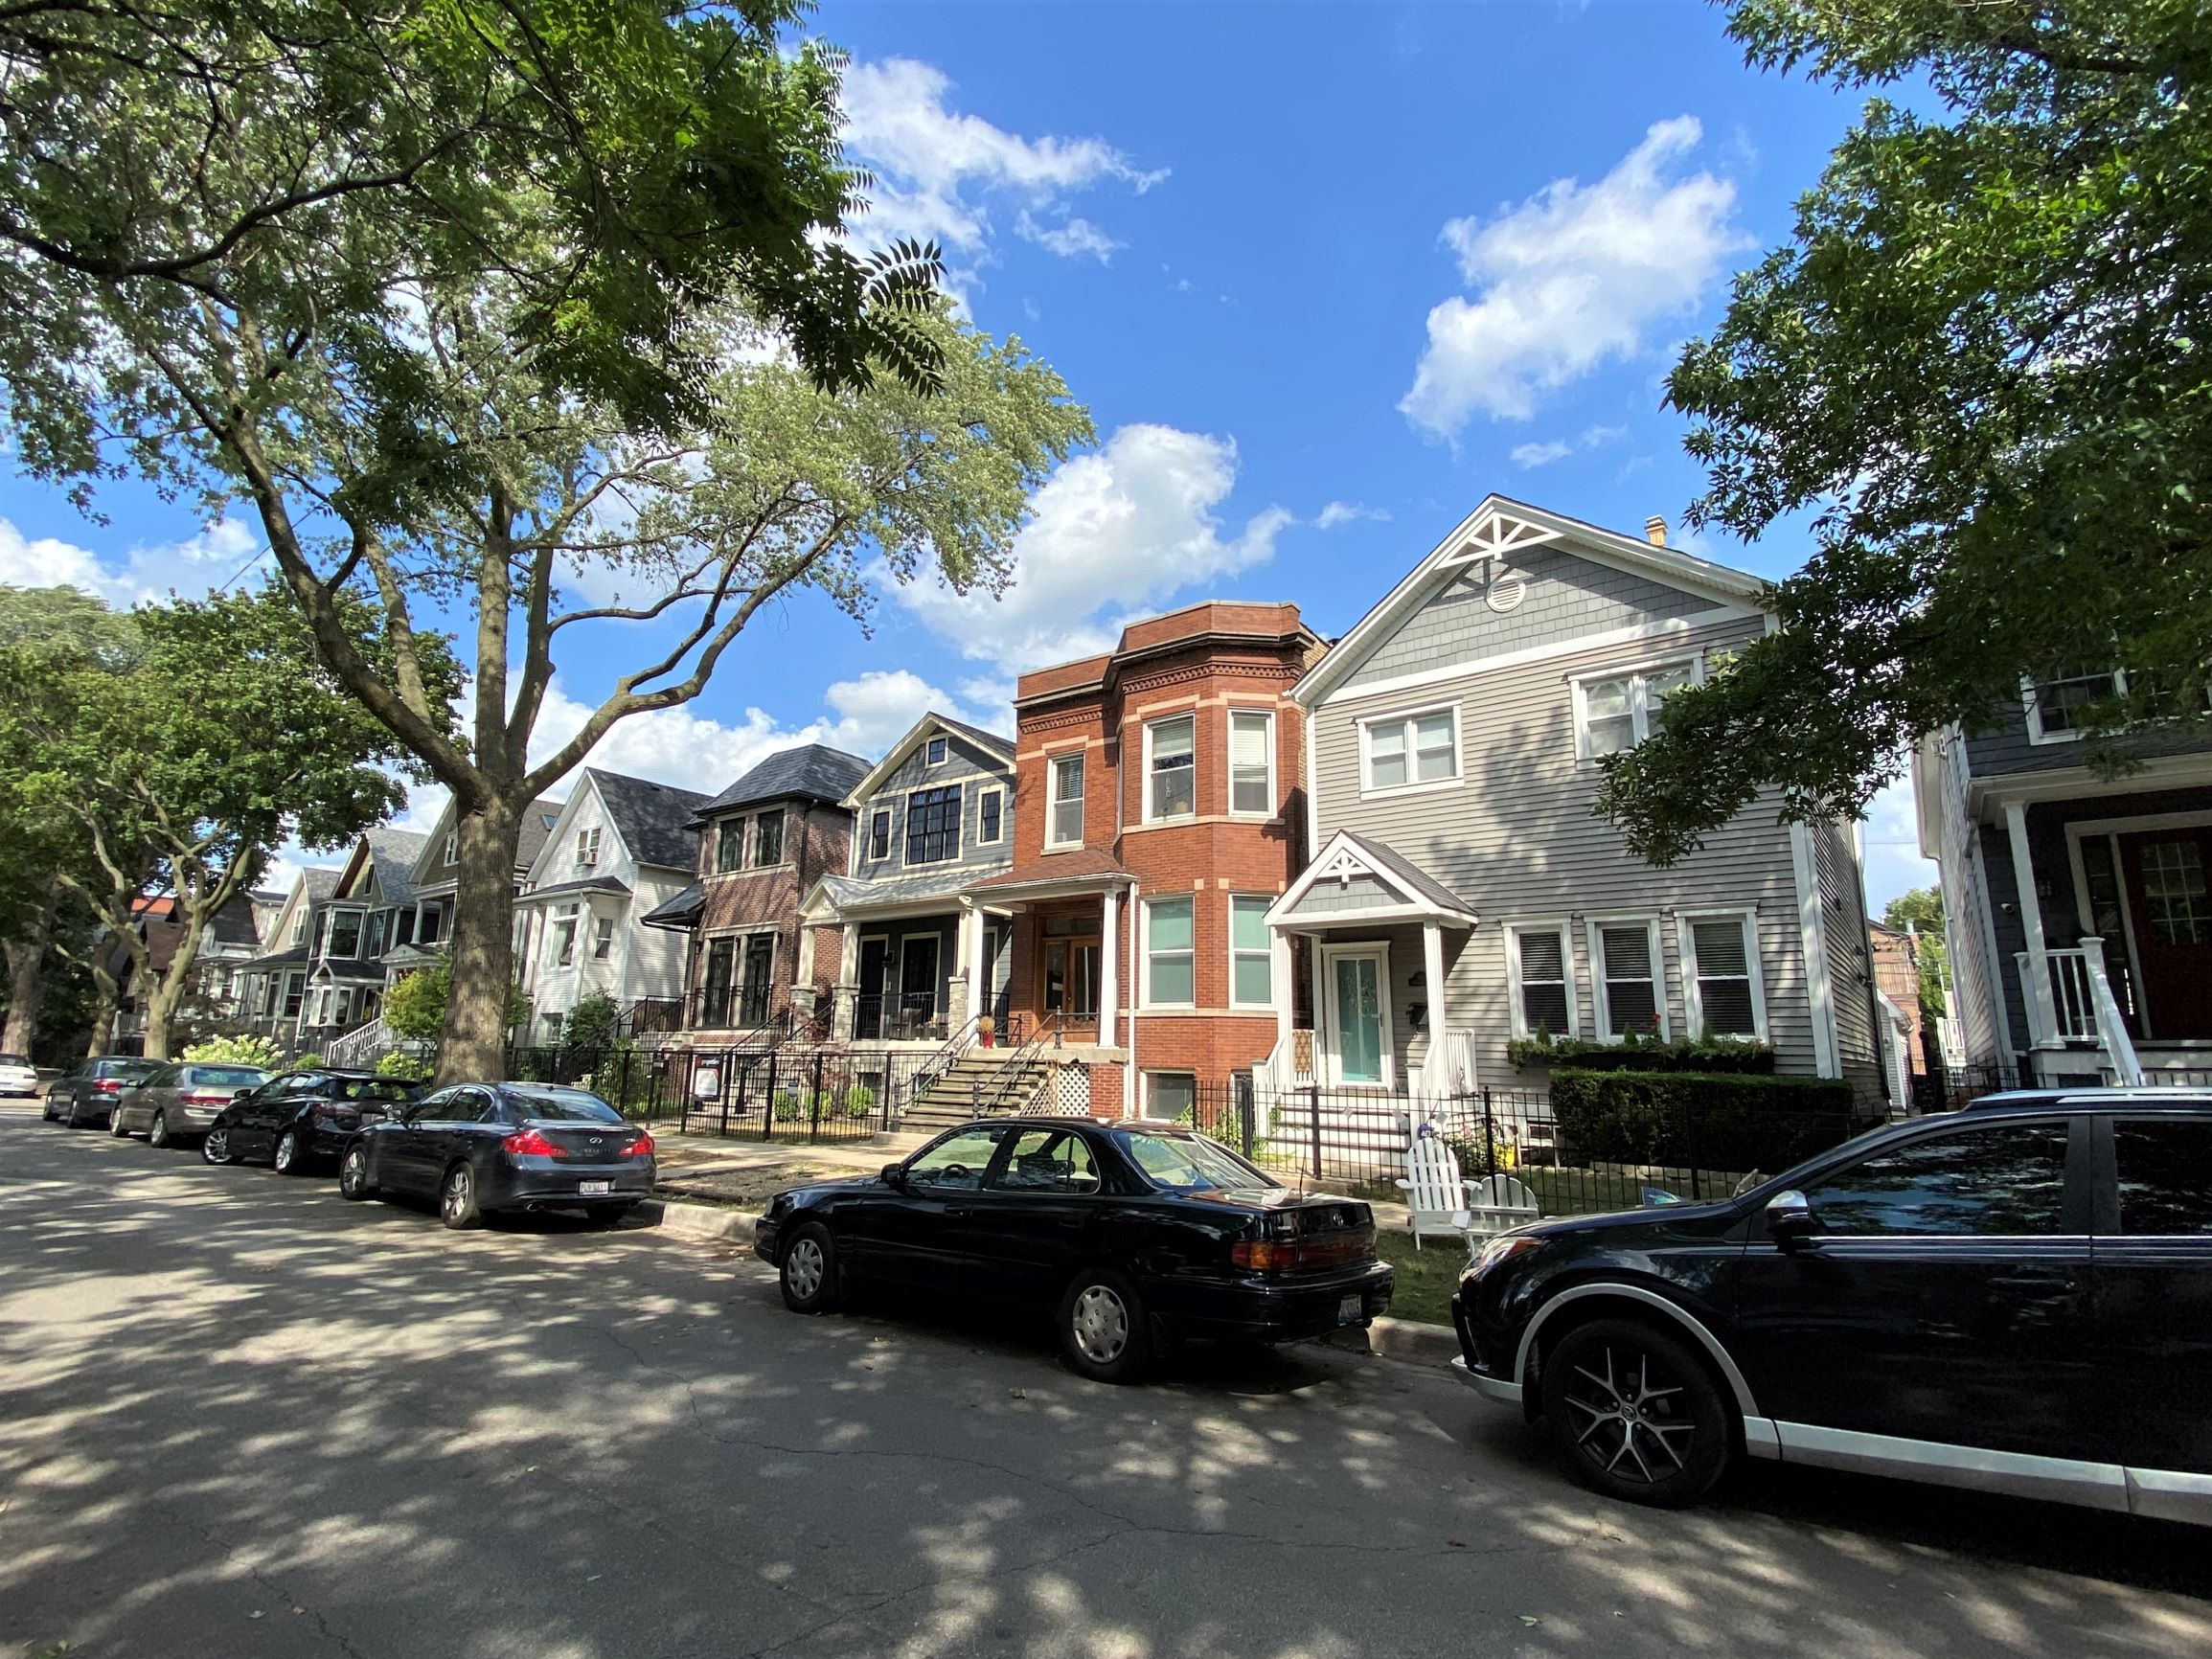 view of homes on a Roscoe Village side street